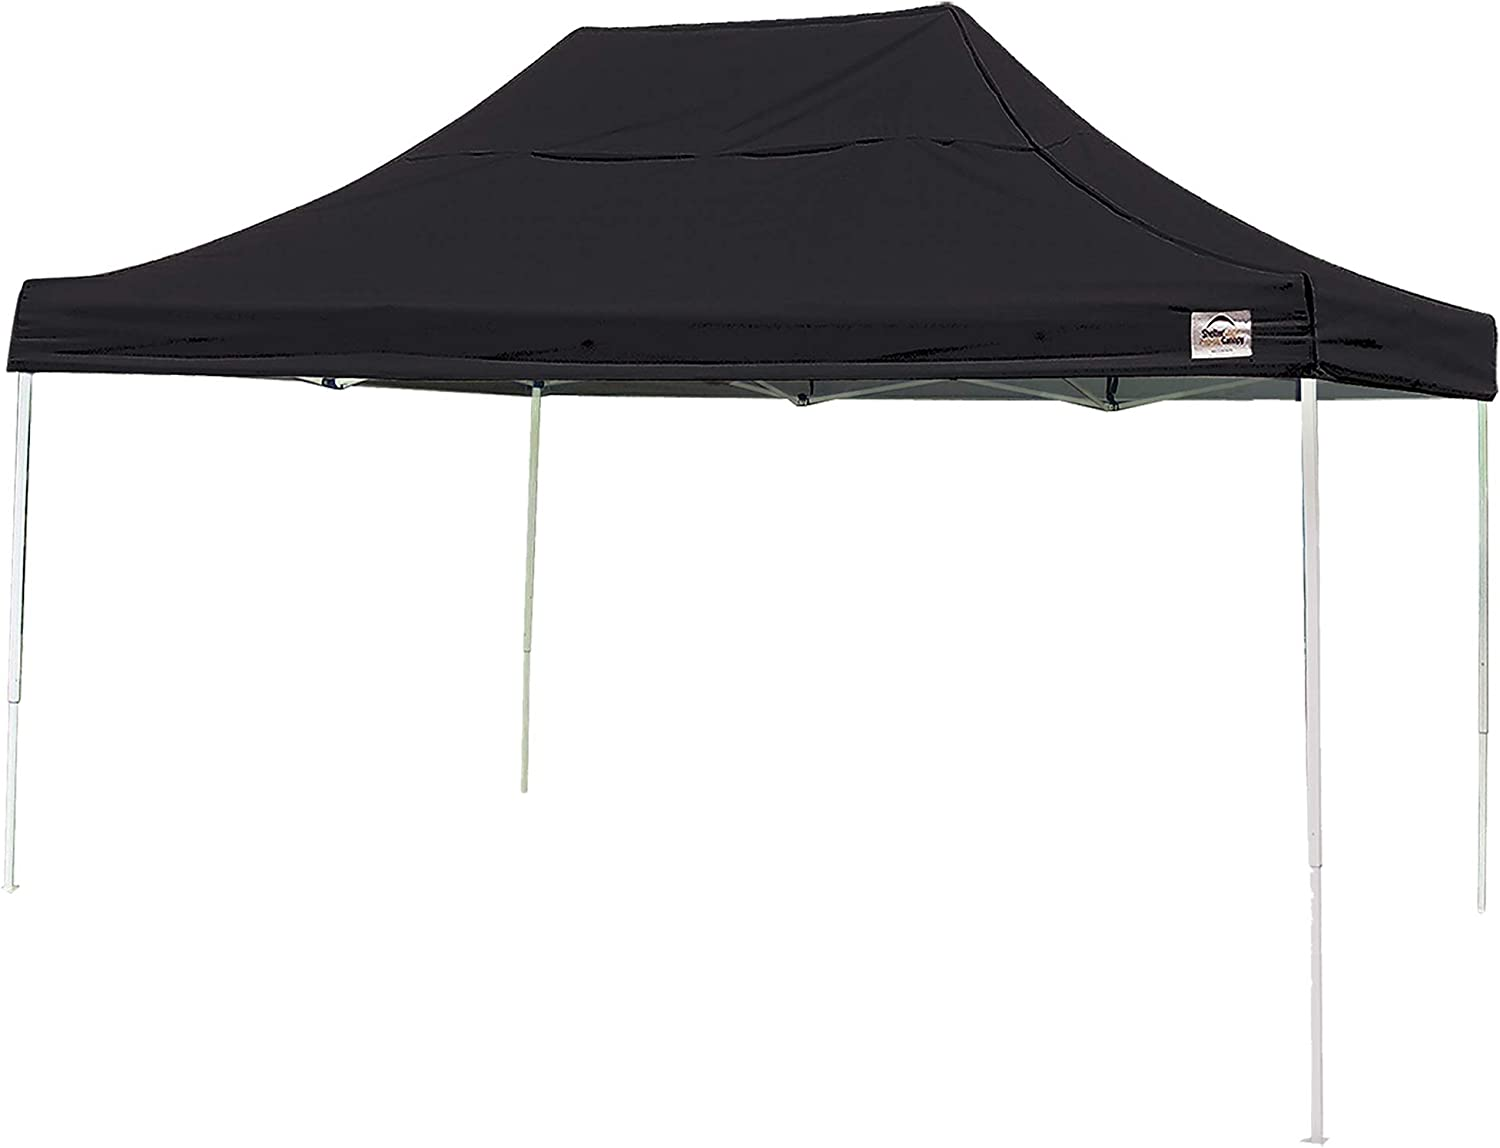 ShelterLogic Easy Set-Up 10 x 15-Feet Straight Leg 50 UPF Protection Pop-Up Canopy with Roller Storage Bag for the Beach, Park, Tailgating, and Other Outdoor Activities, Black